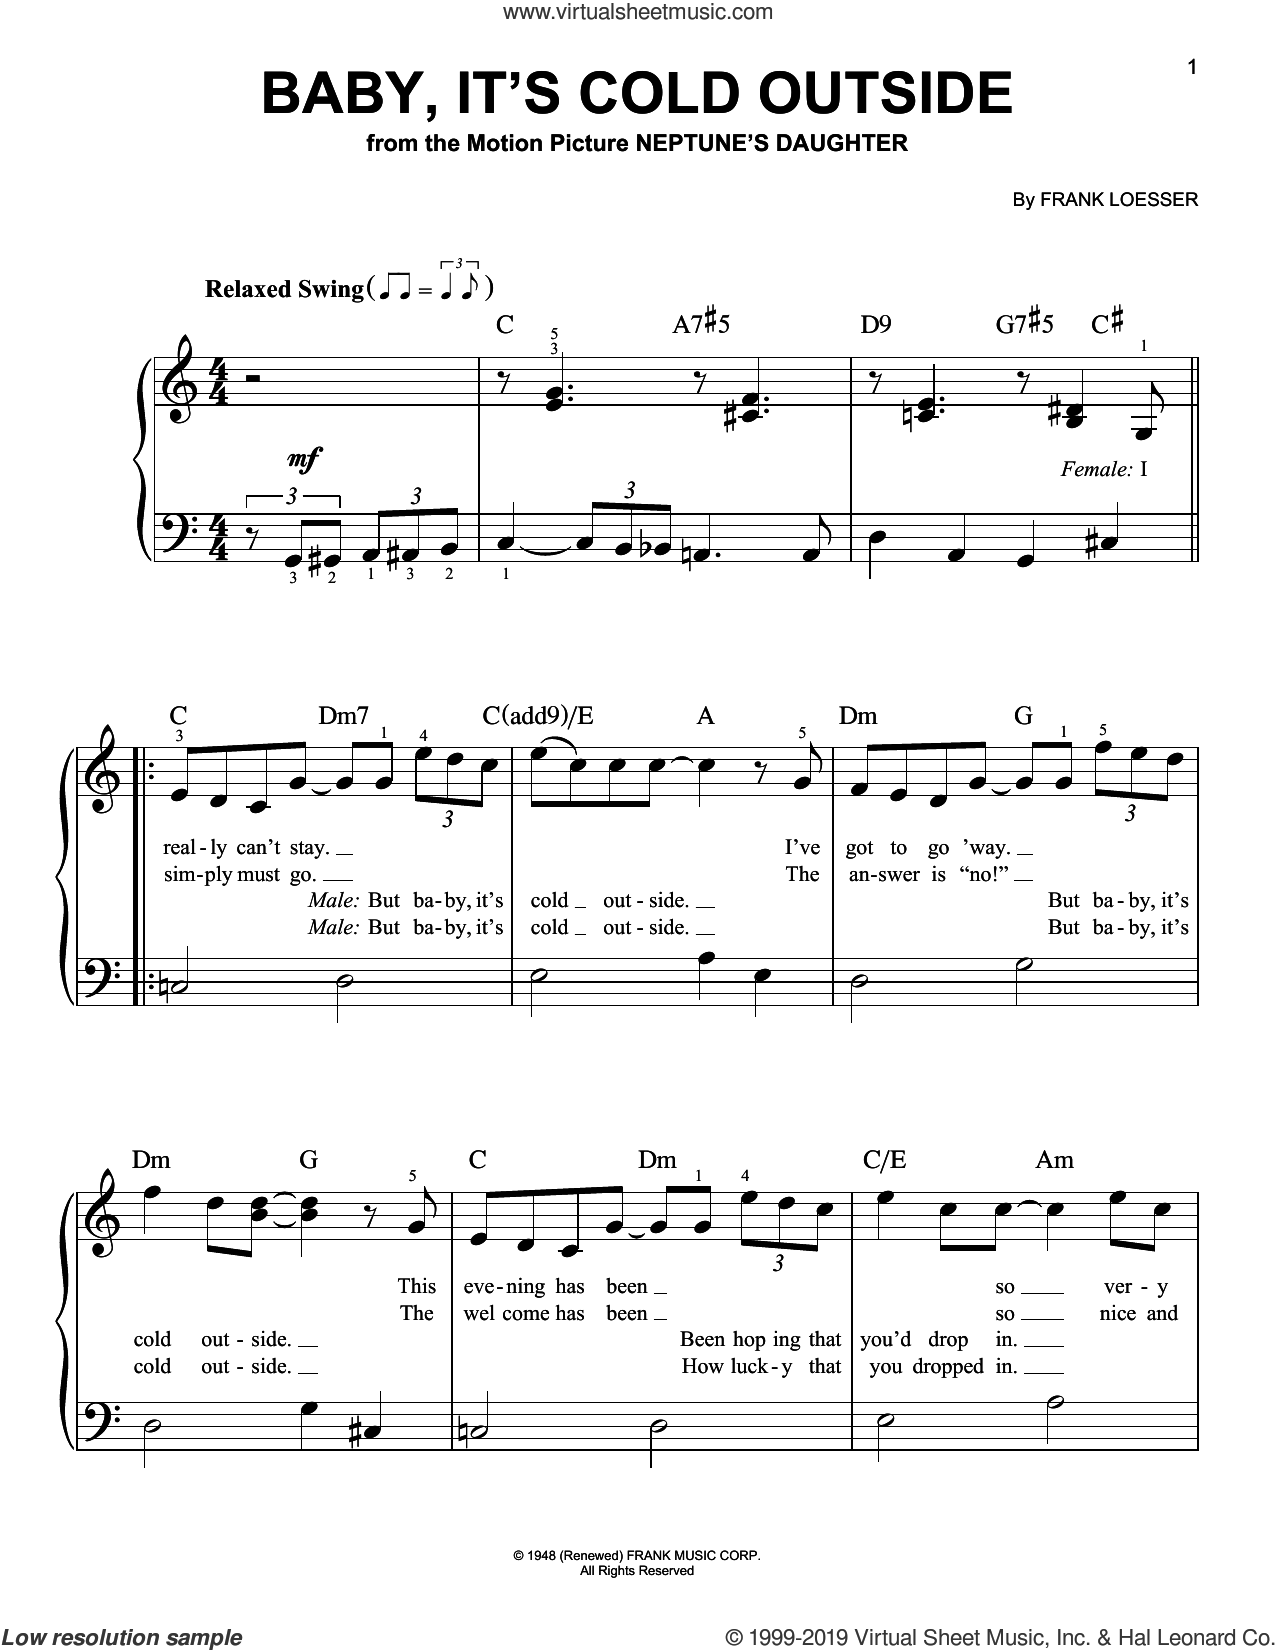 Baby, It's Cold Outside sheet music for piano solo by Frank Loesser, easy skill level